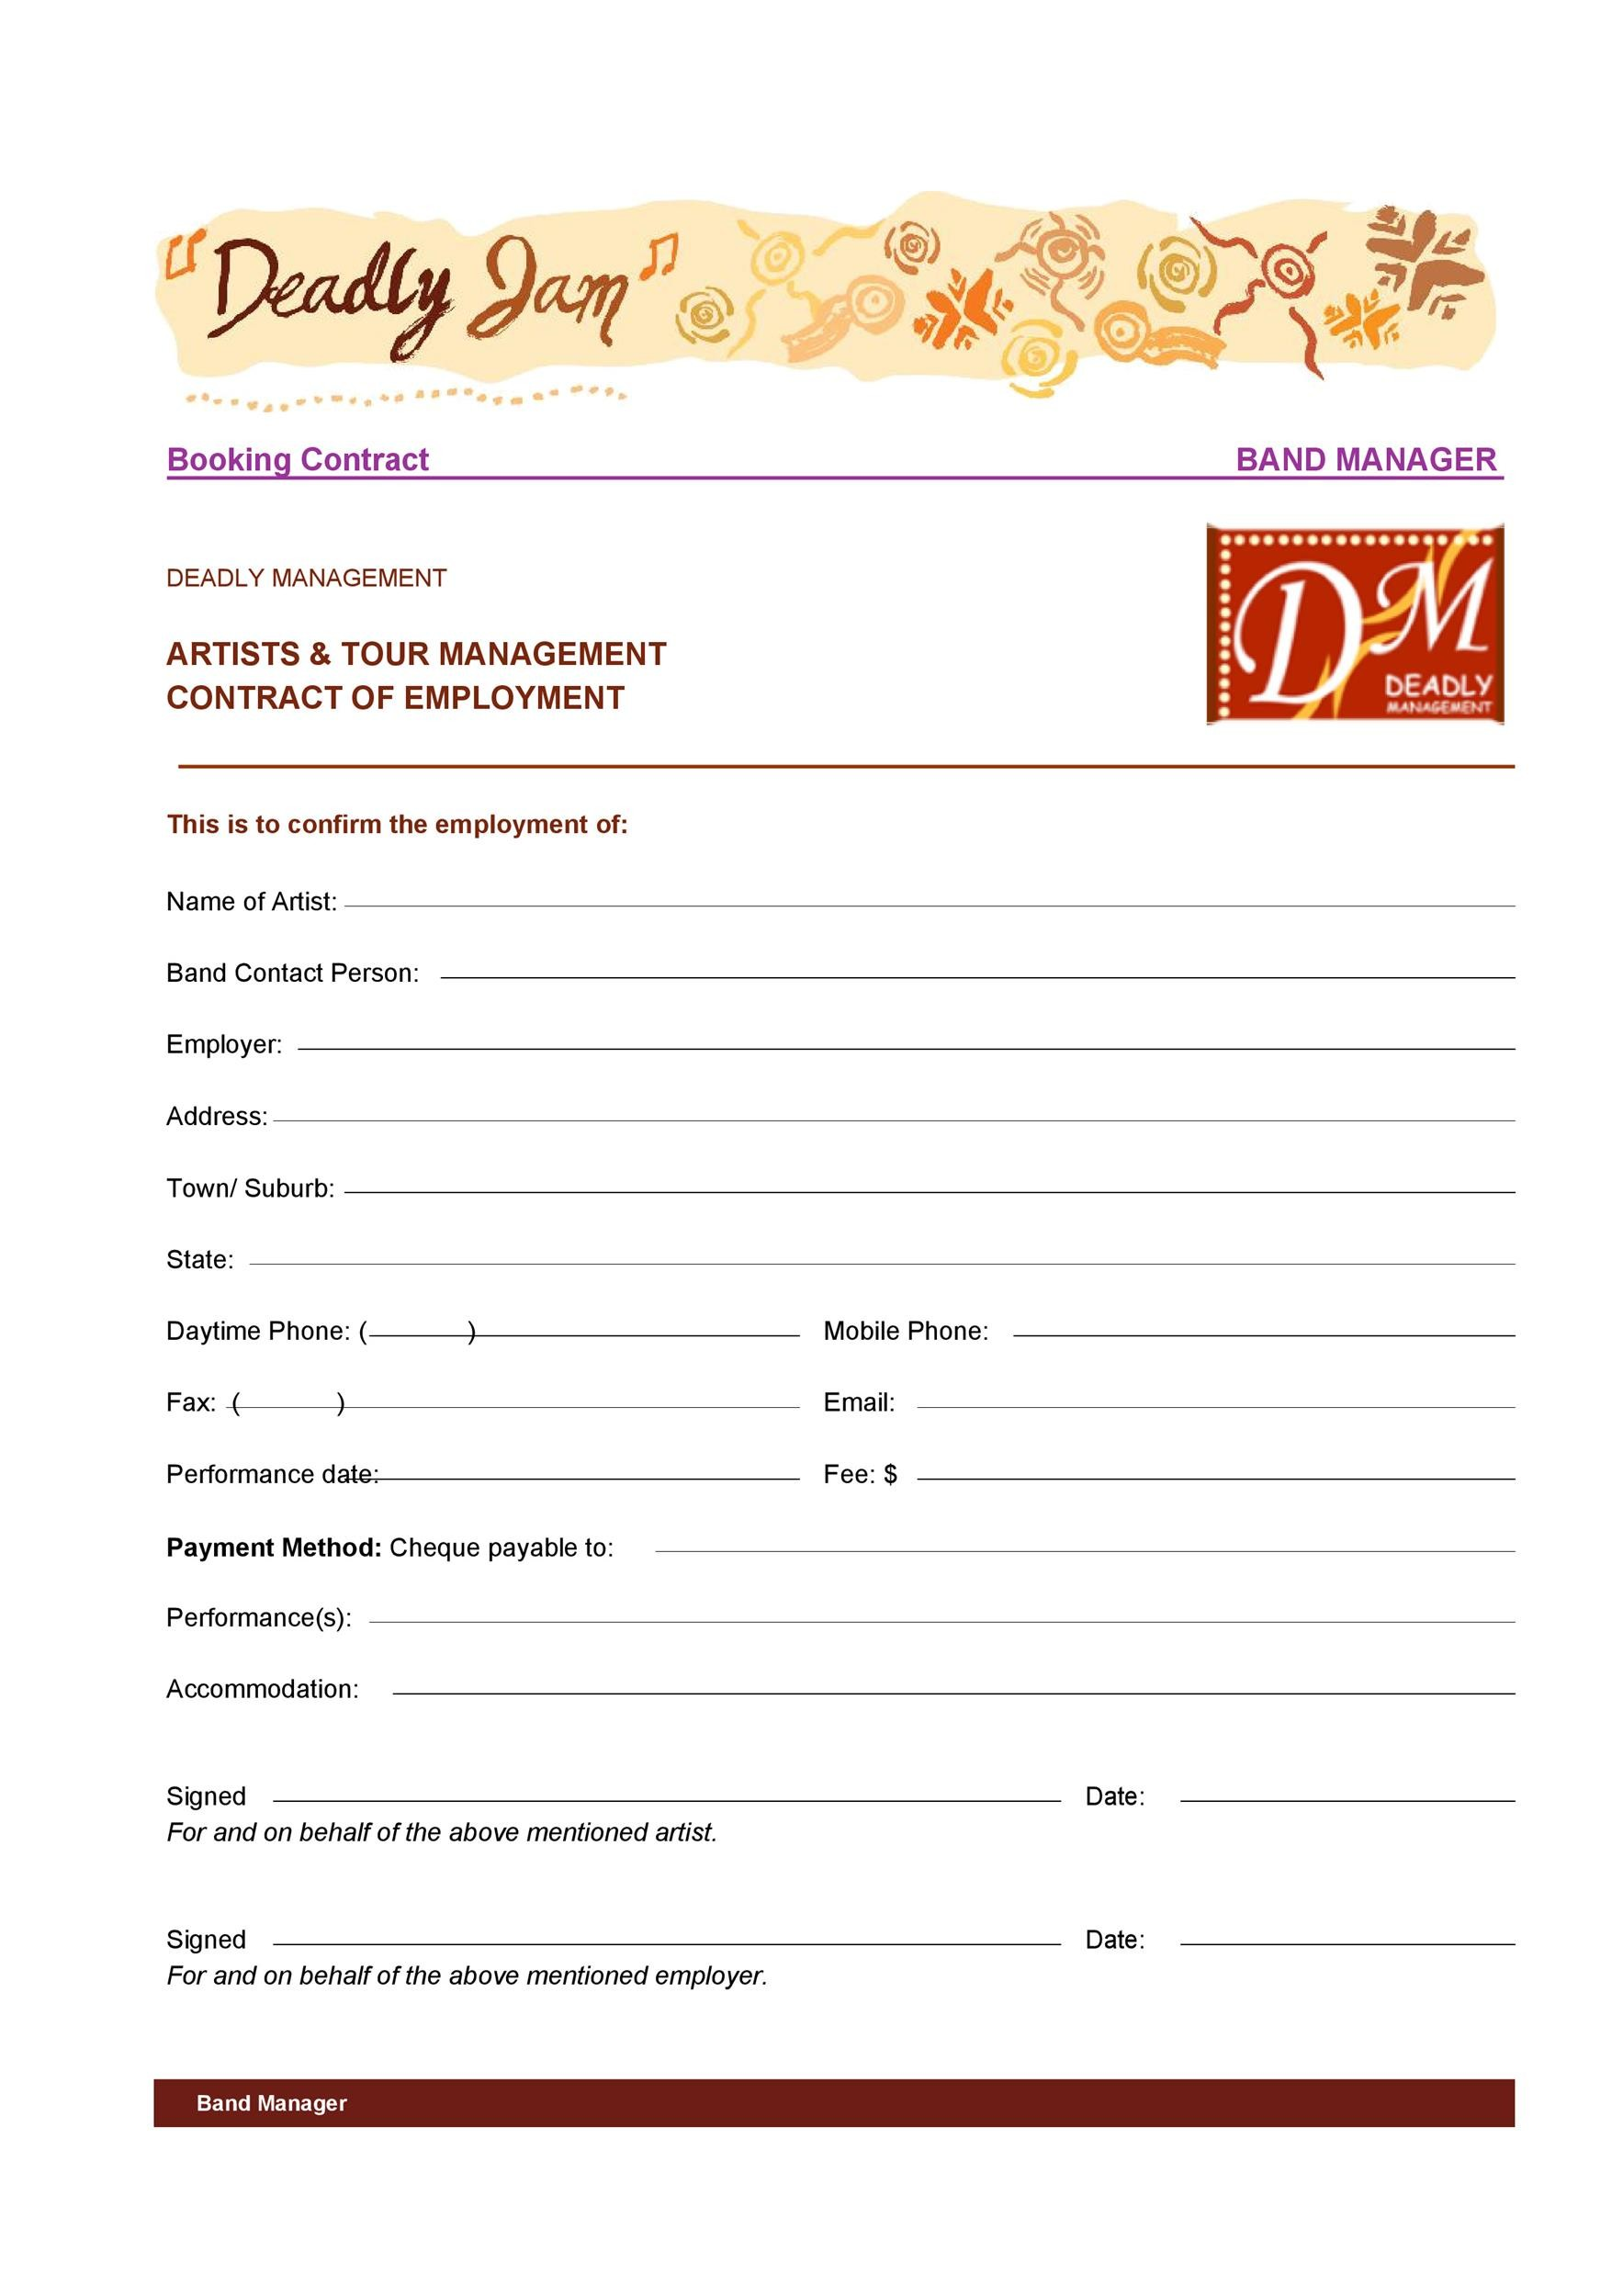 Free artist management contract 09